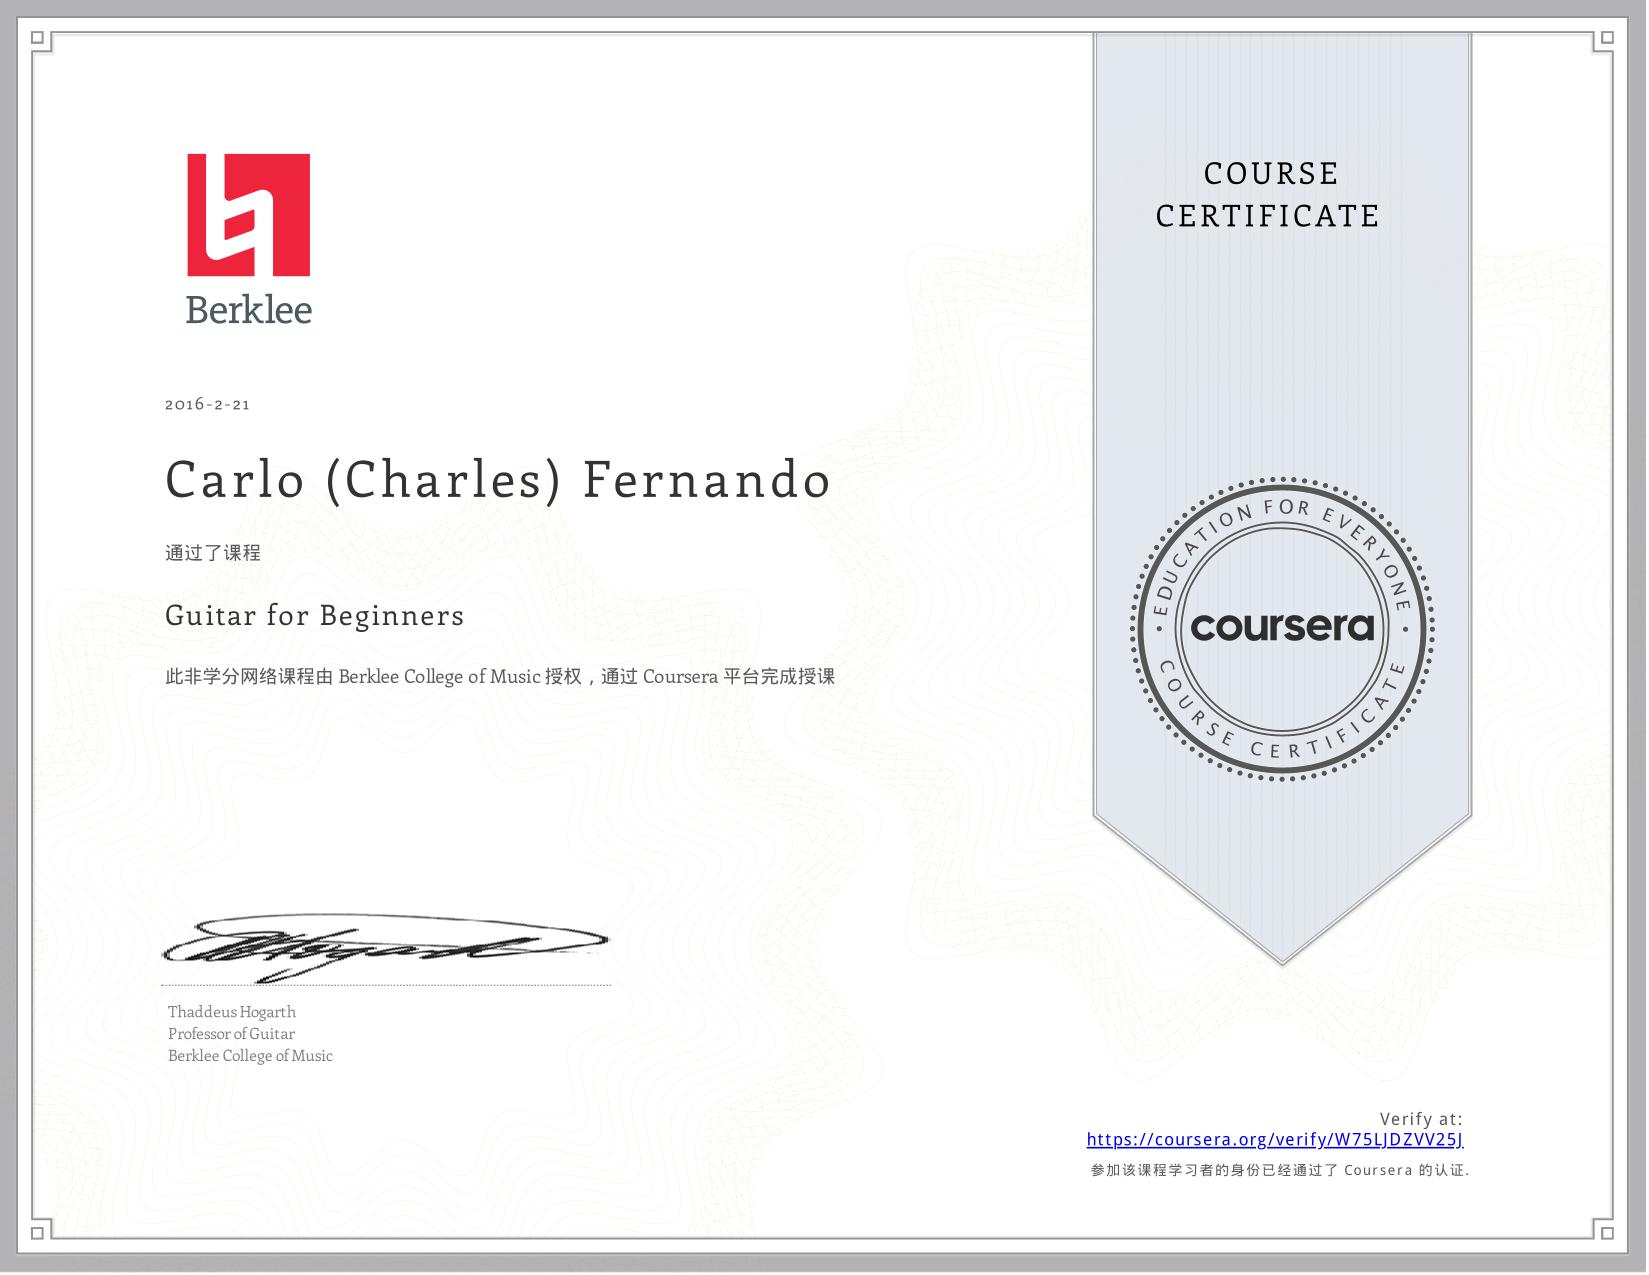 View certificate for Carlo (Charles) Fernando, Guitar for Beginners, an online non-credit course authorized by Berklee College of Music and offered through Coursera